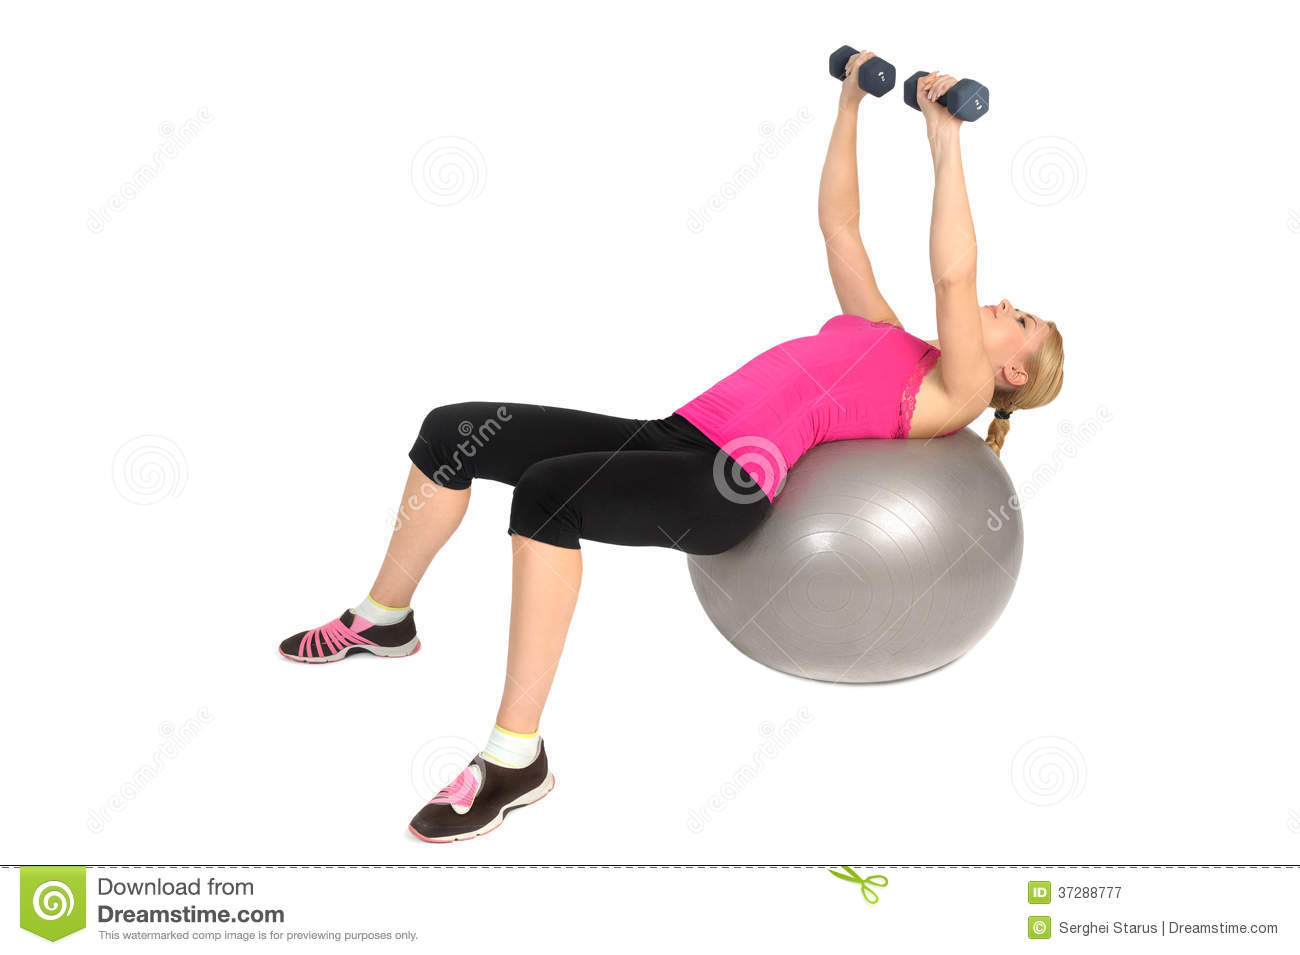 Stability Ball And Dumbbell Exercises 11